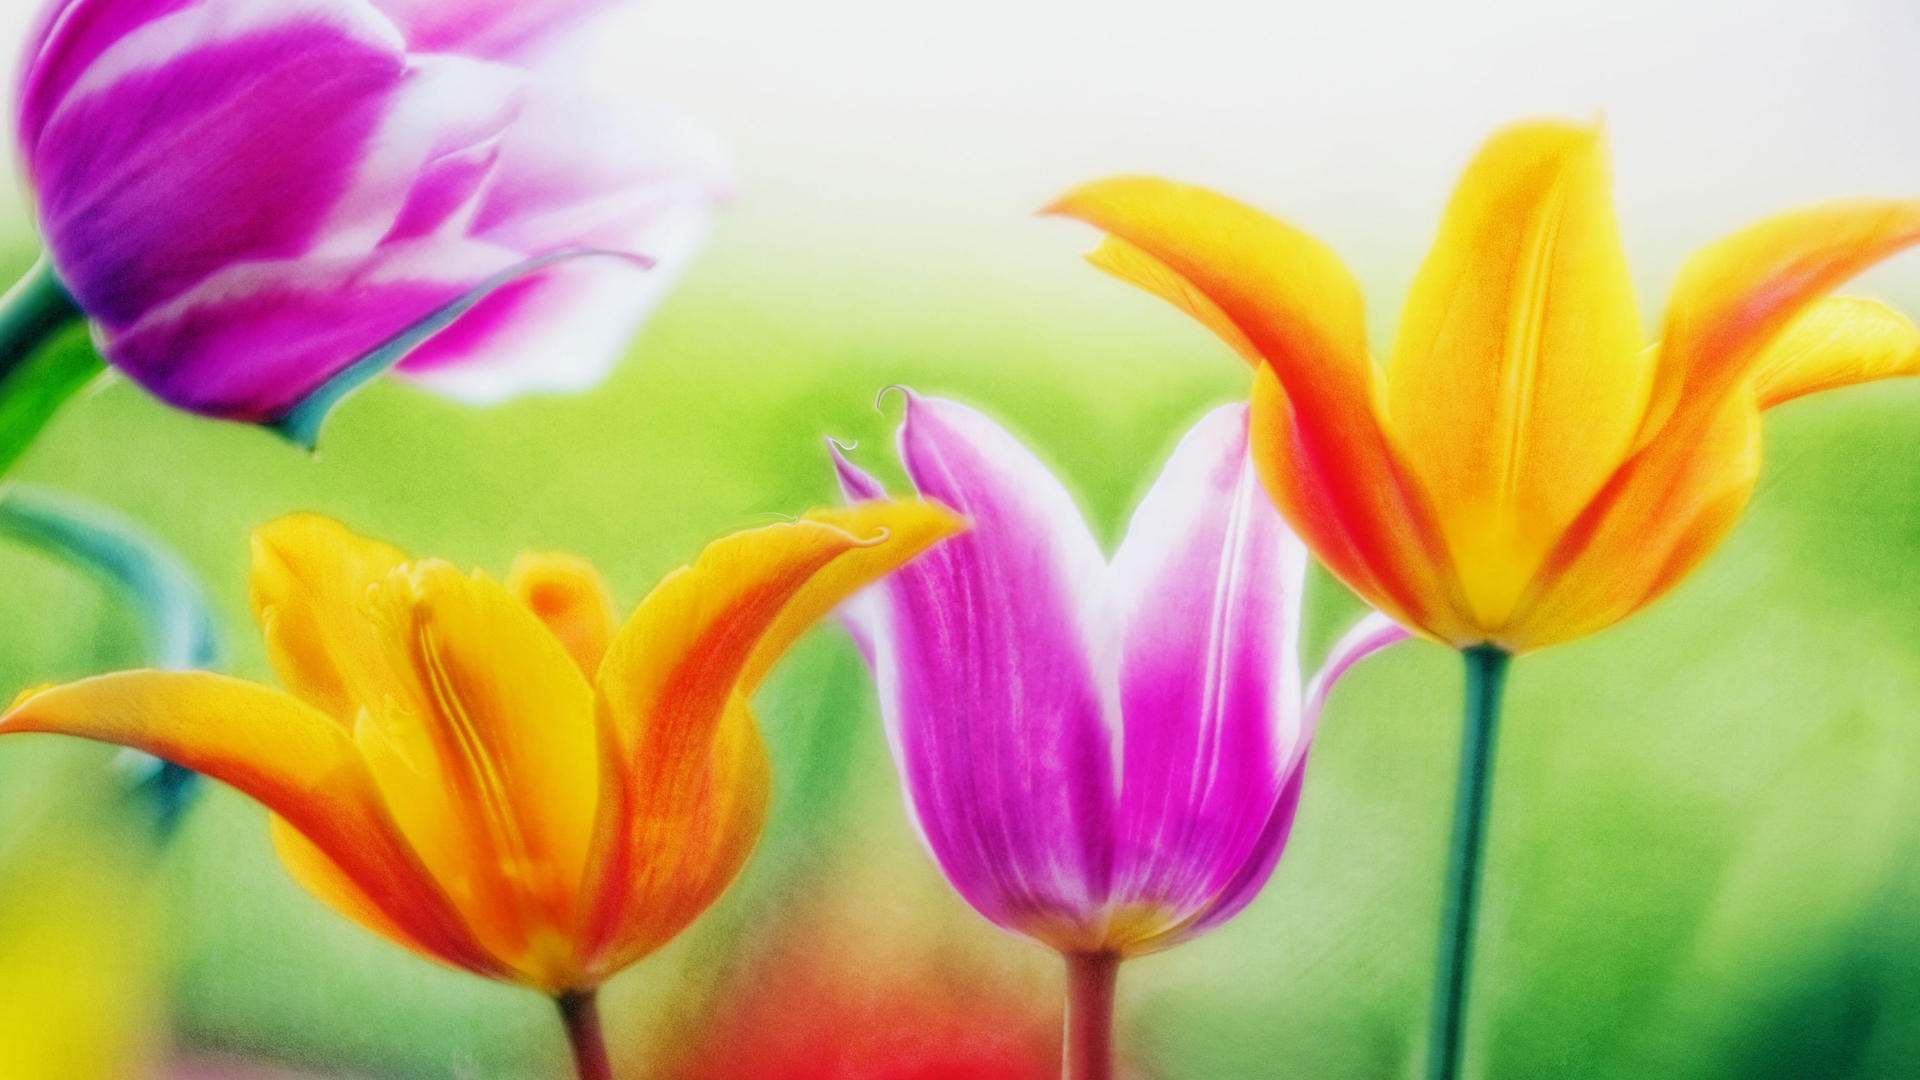 Flowers Wallpaper Full Size 1920x1080 Download Hd Wallpaper Wallpapertip